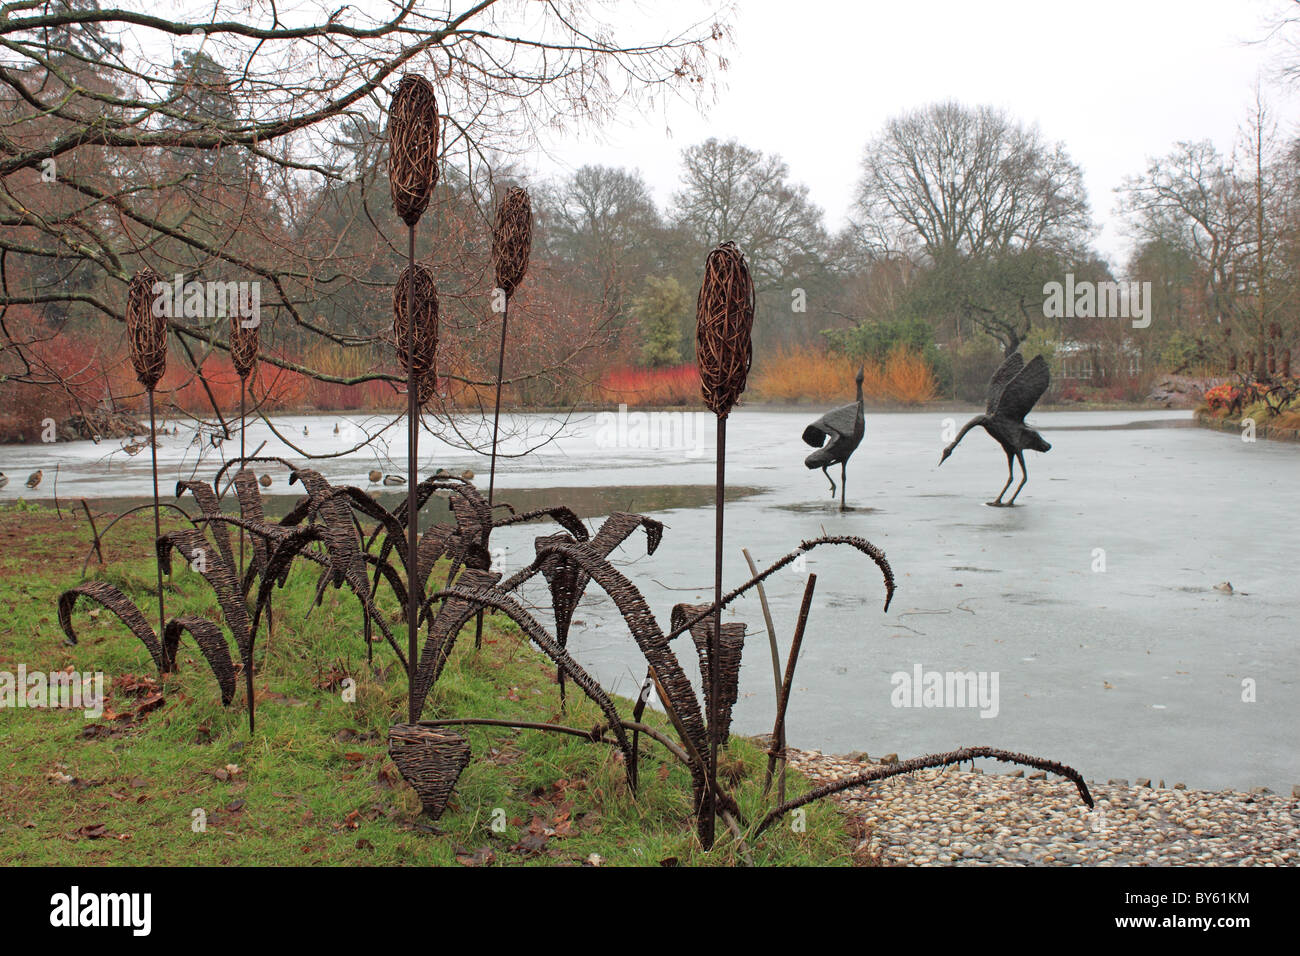 Metal sculptures of reeds and storks, frozen lake in Seven Acres, RHS Garden Wisley, Surrey, England, Great Britain, Stock Photo